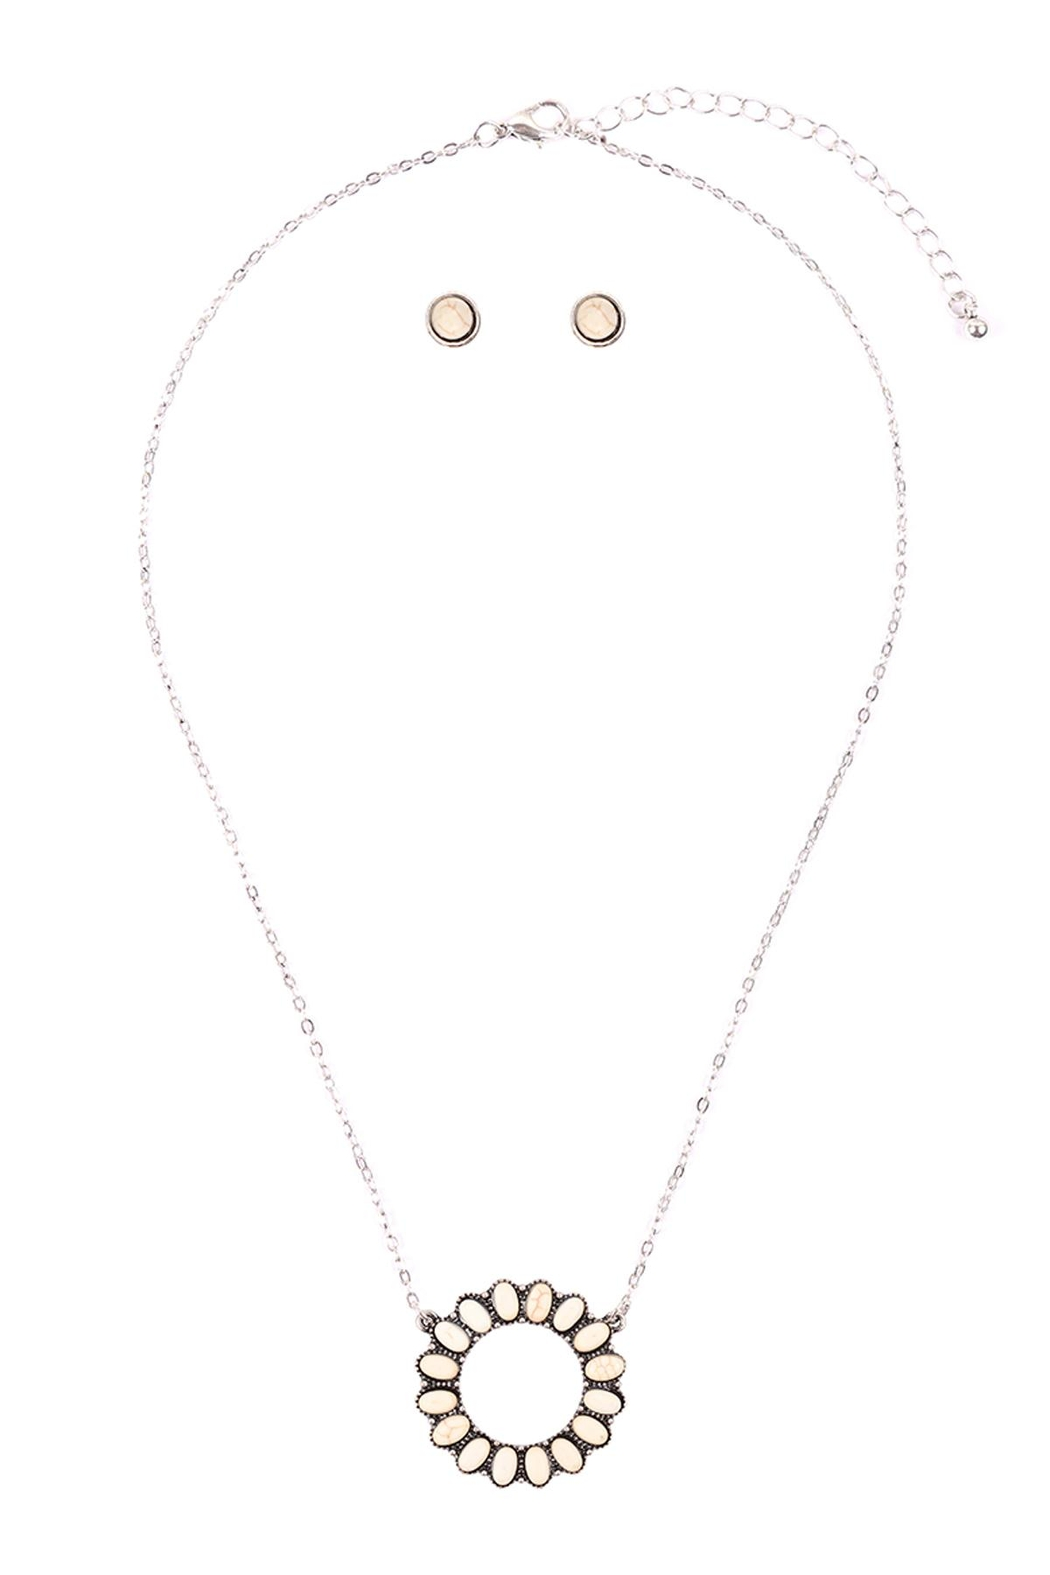 Riah Fashion Open-Circle-Natural-Ova- Ston- Pave-Pendant-Necklace-And-Earring-Set - Front Full Image